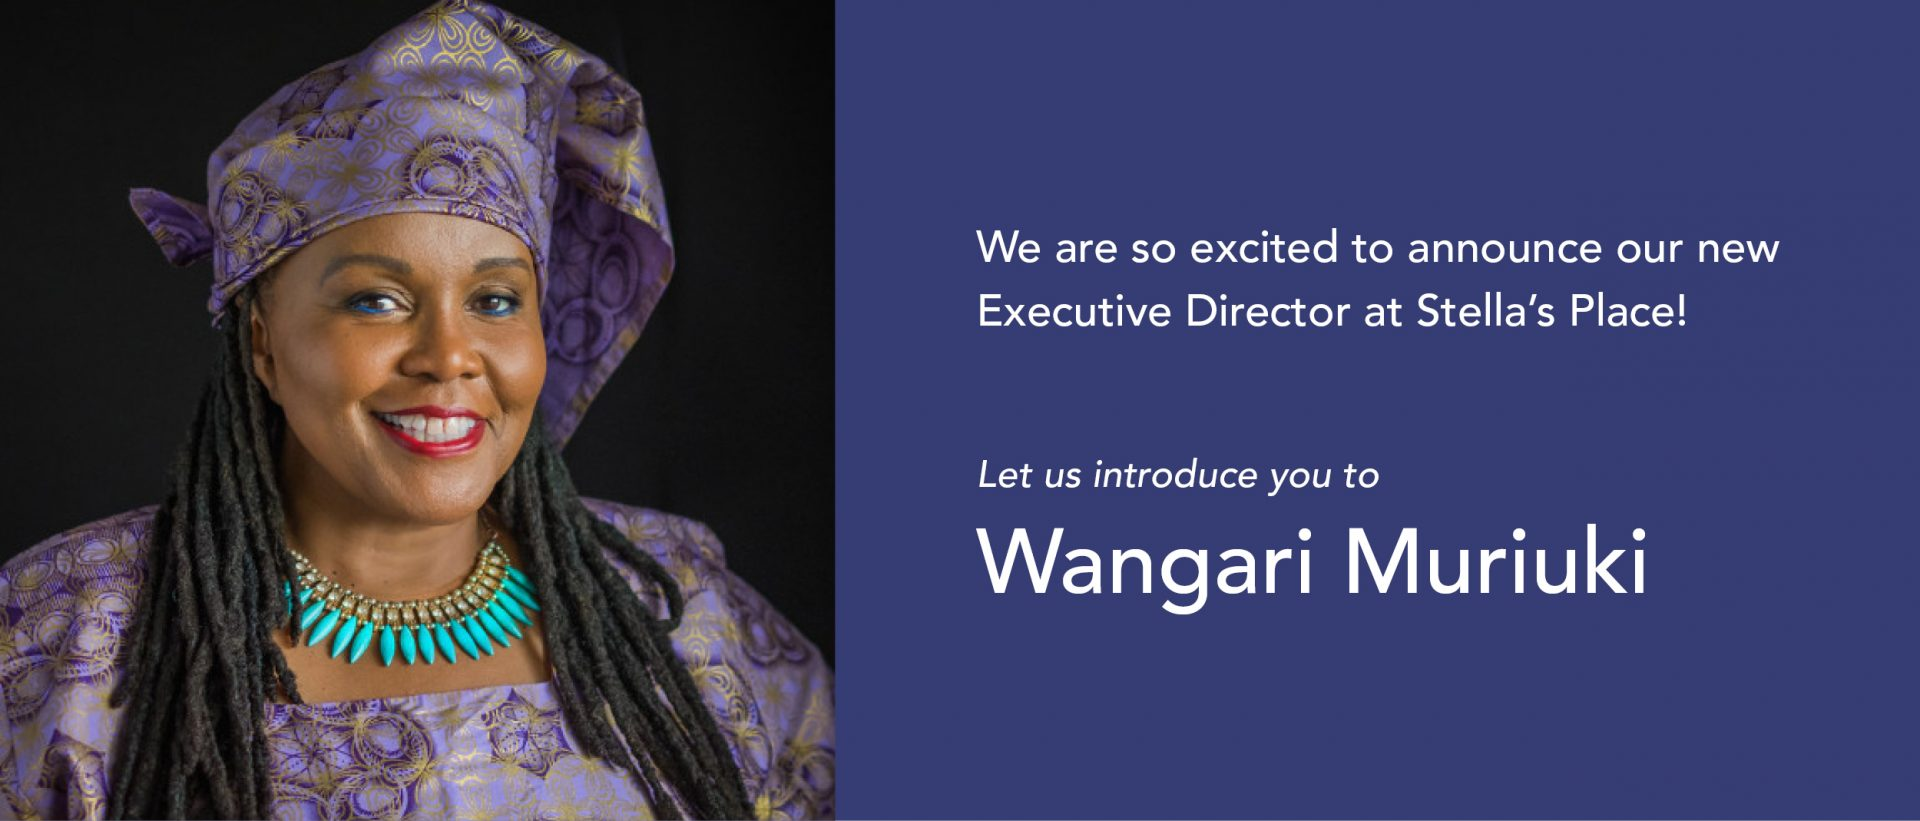 "Portrait of our new Executive Director of Stella's Place, Wangari Muriuki. Text above says ""We are so excited to announce our new Executive Director at Stella's Place!"" and text bottom right says ""Let us introduce you to Wangari Muriuki."""